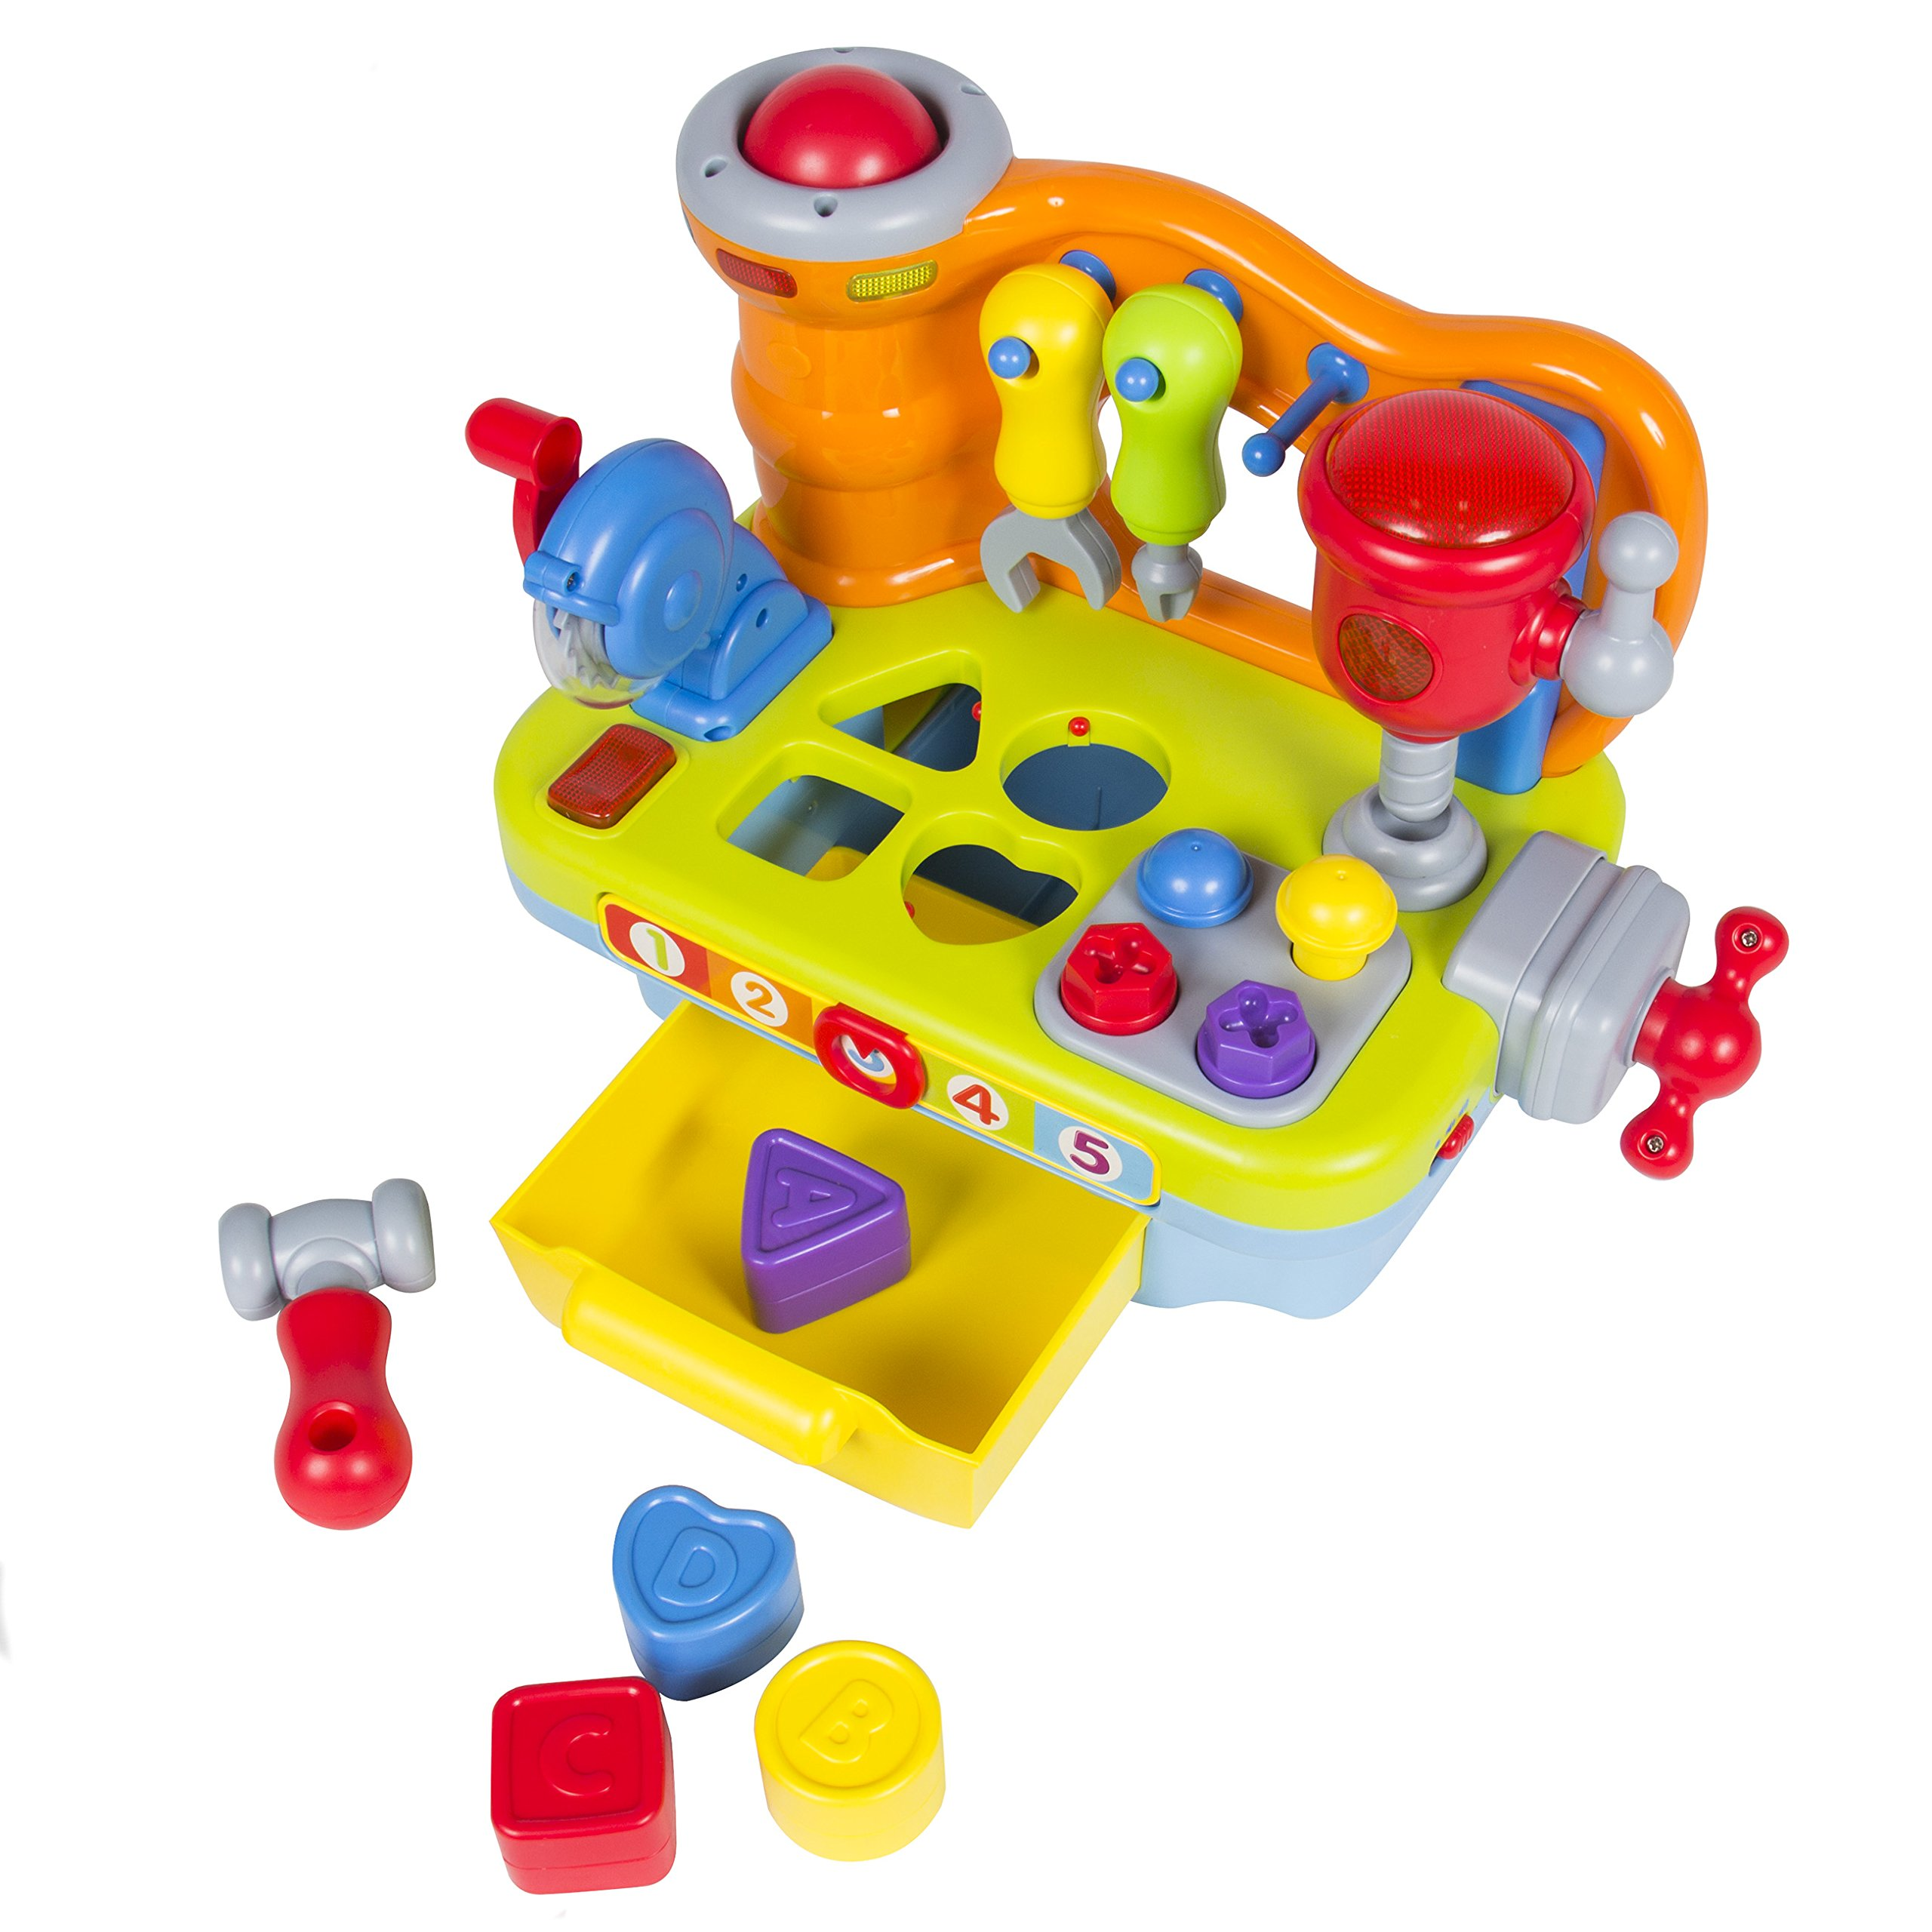 Best Choice Products Musical Learning Pretend Play Tool Workbench Toy, Fun Sound Effects & Lights by Best Choice Products (Image #3)